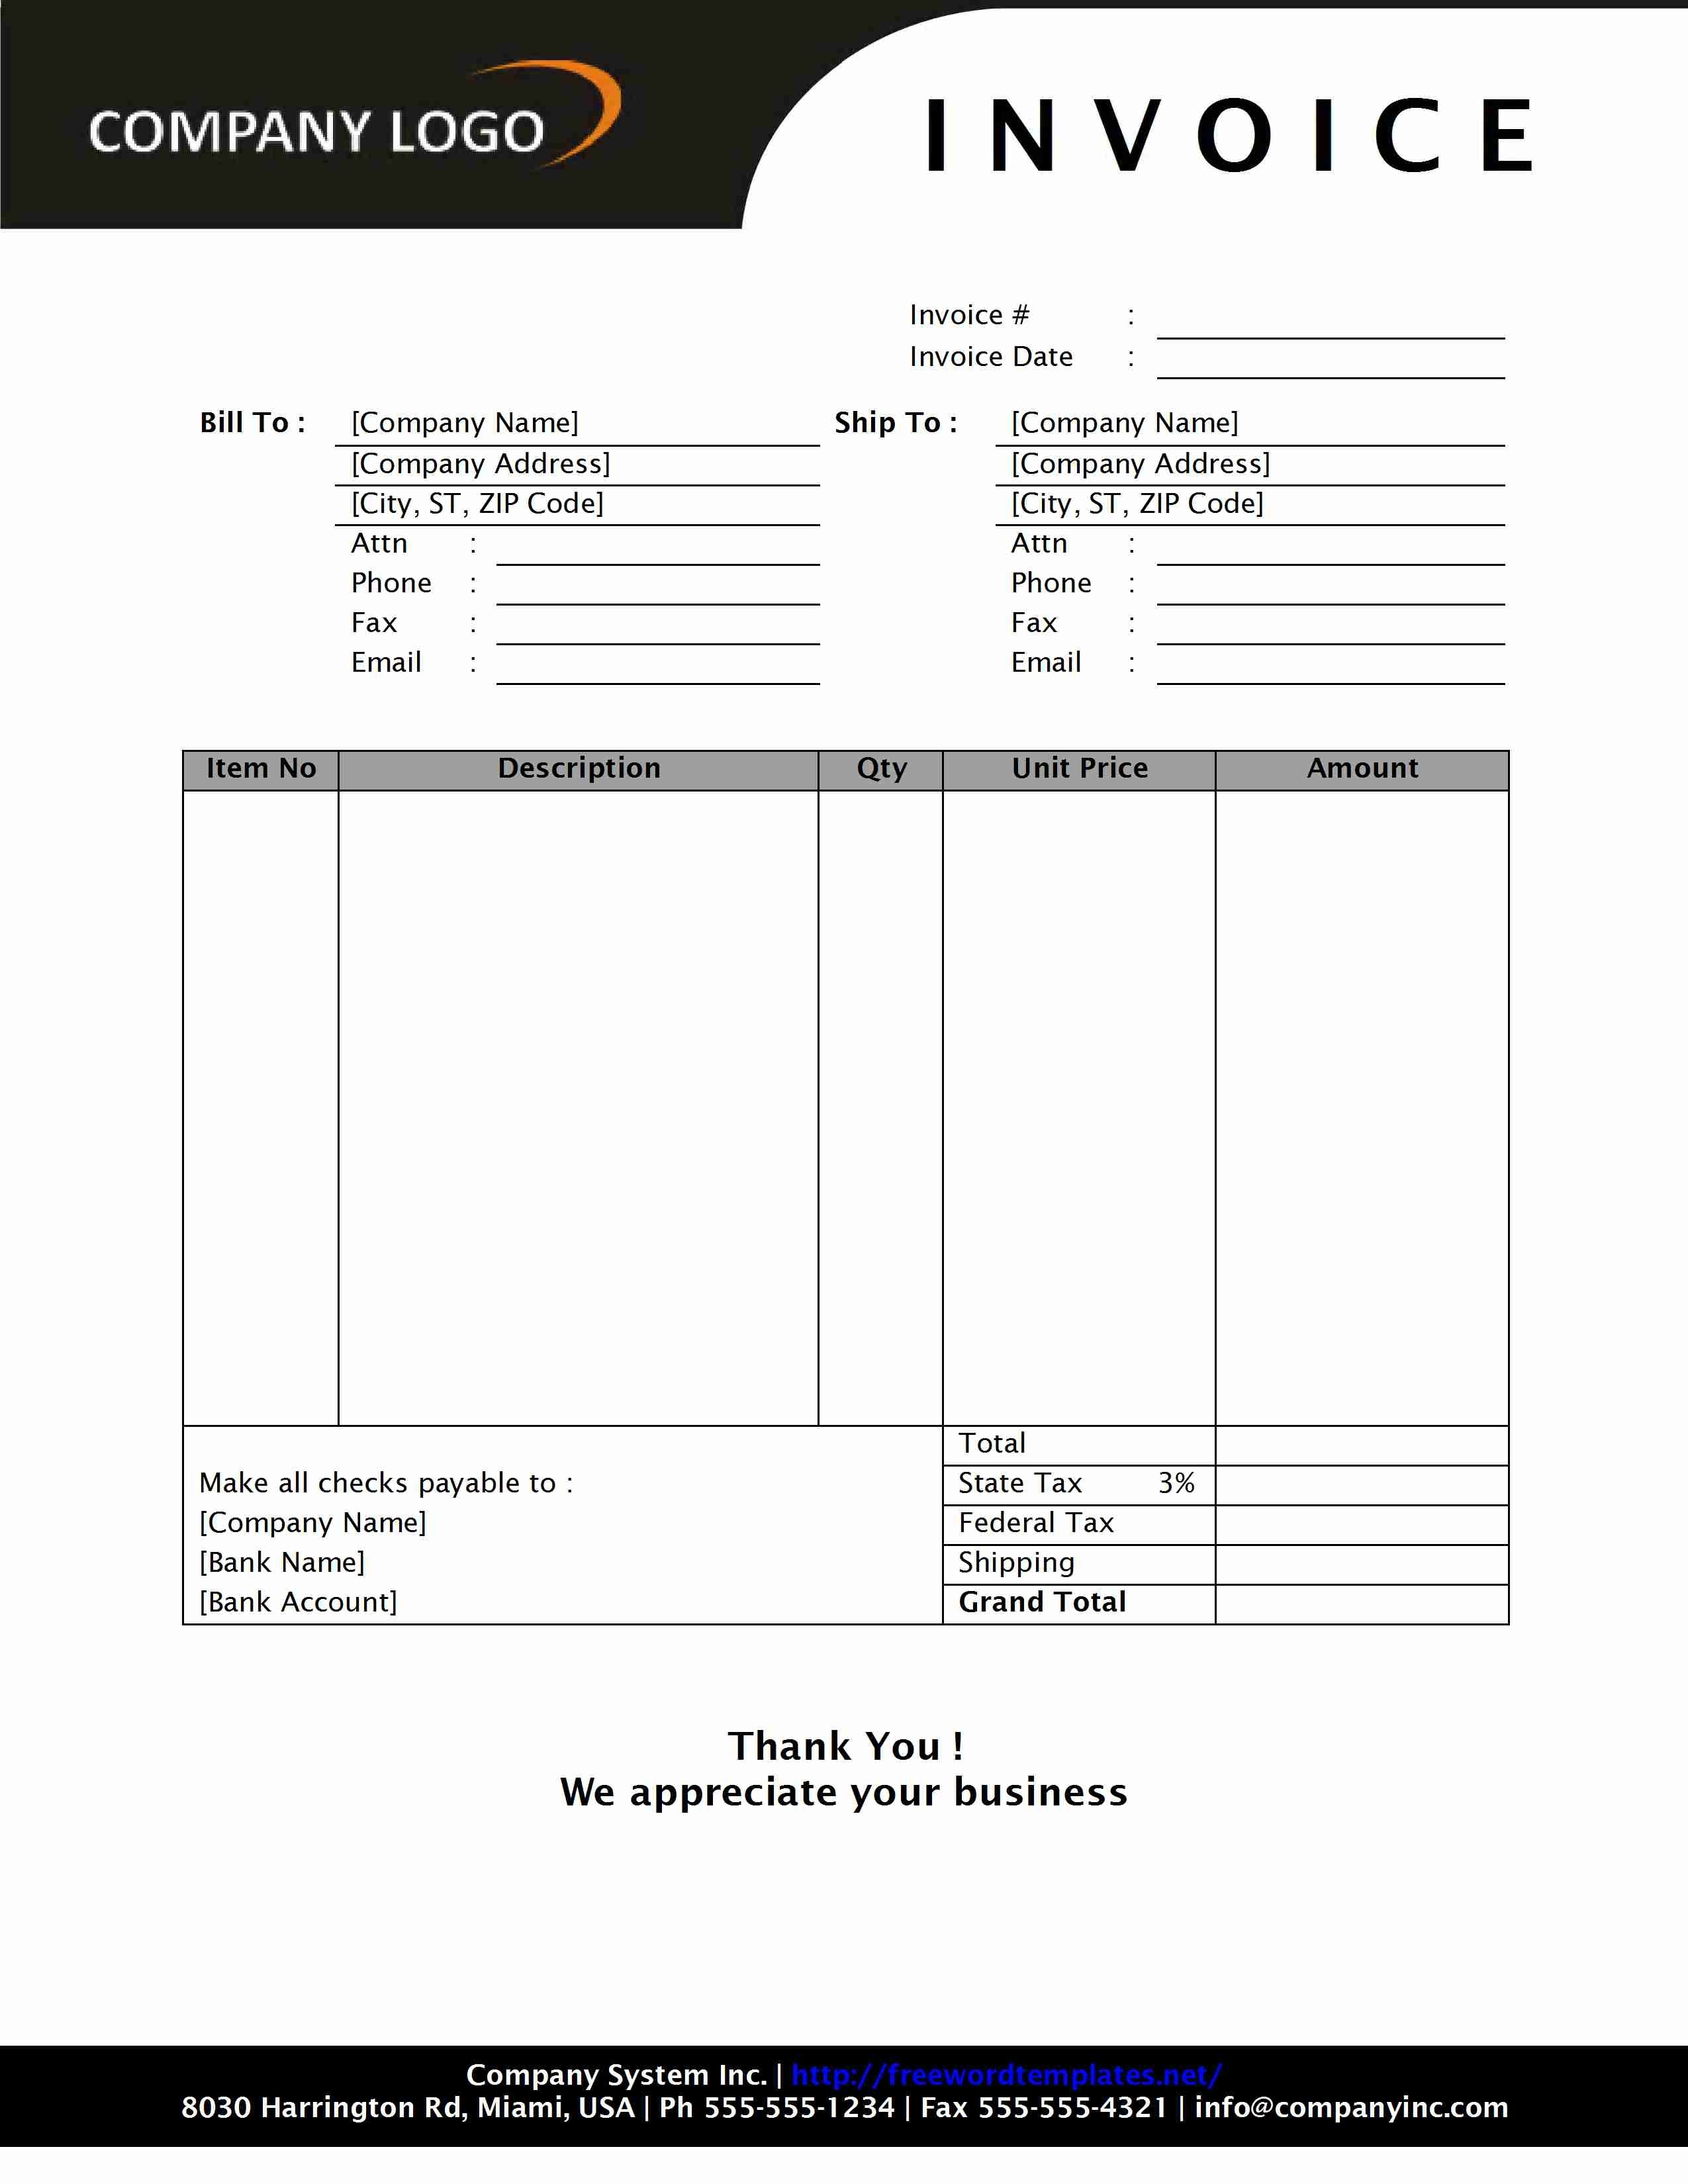 sale invoice template sale invoice format invoice template free 2016 2550 X 3300